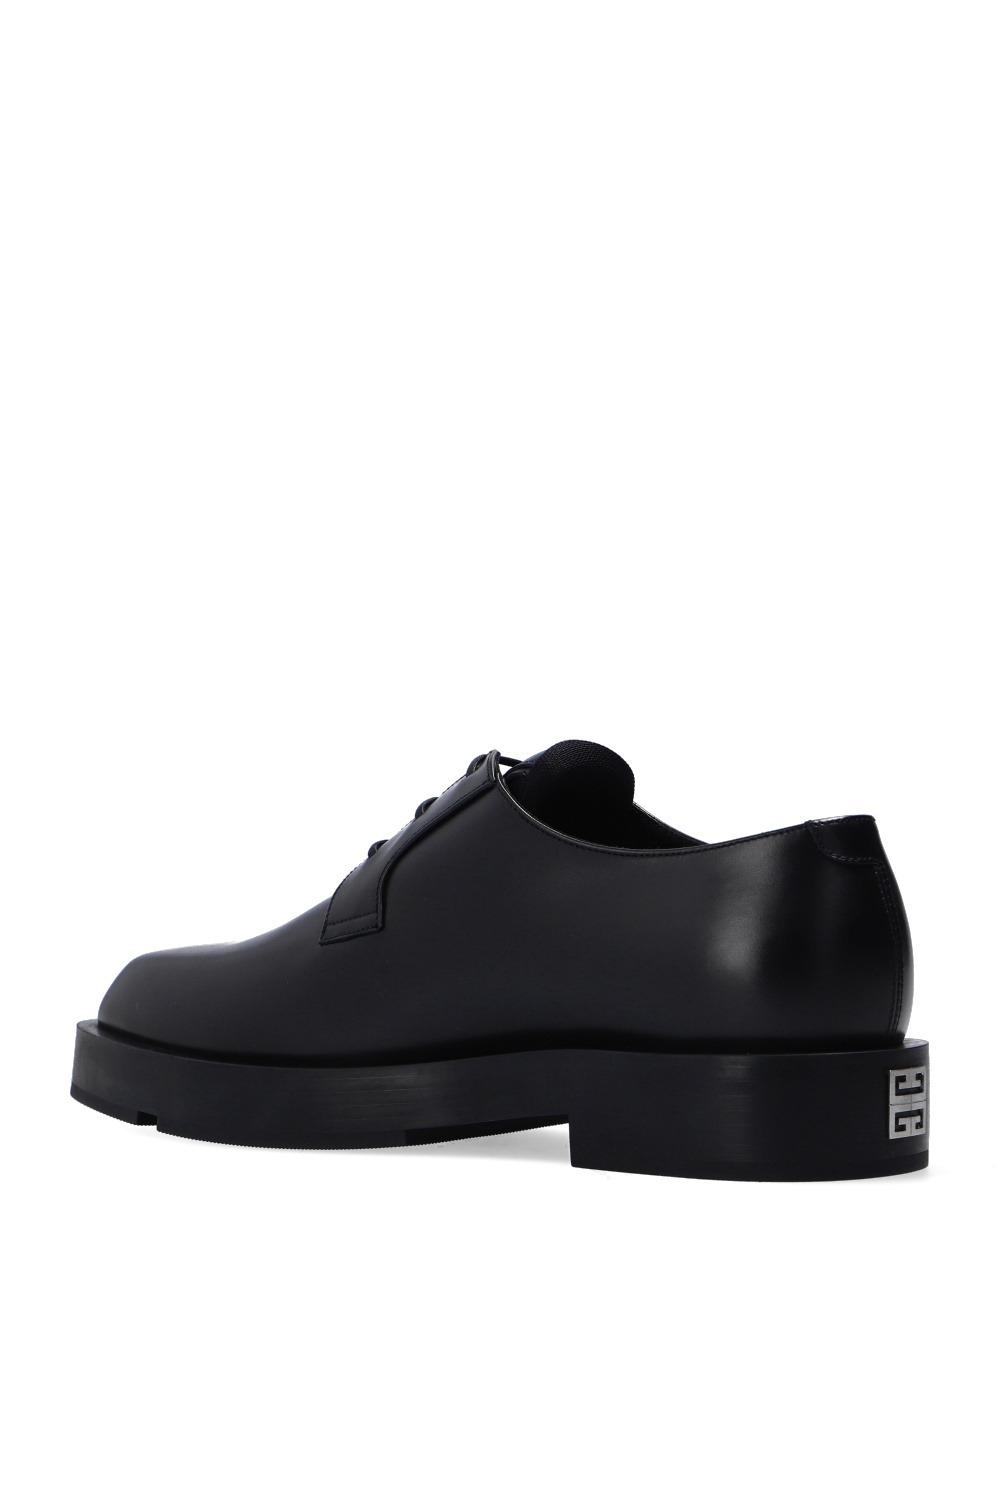 Givenchy Leather derby shoes